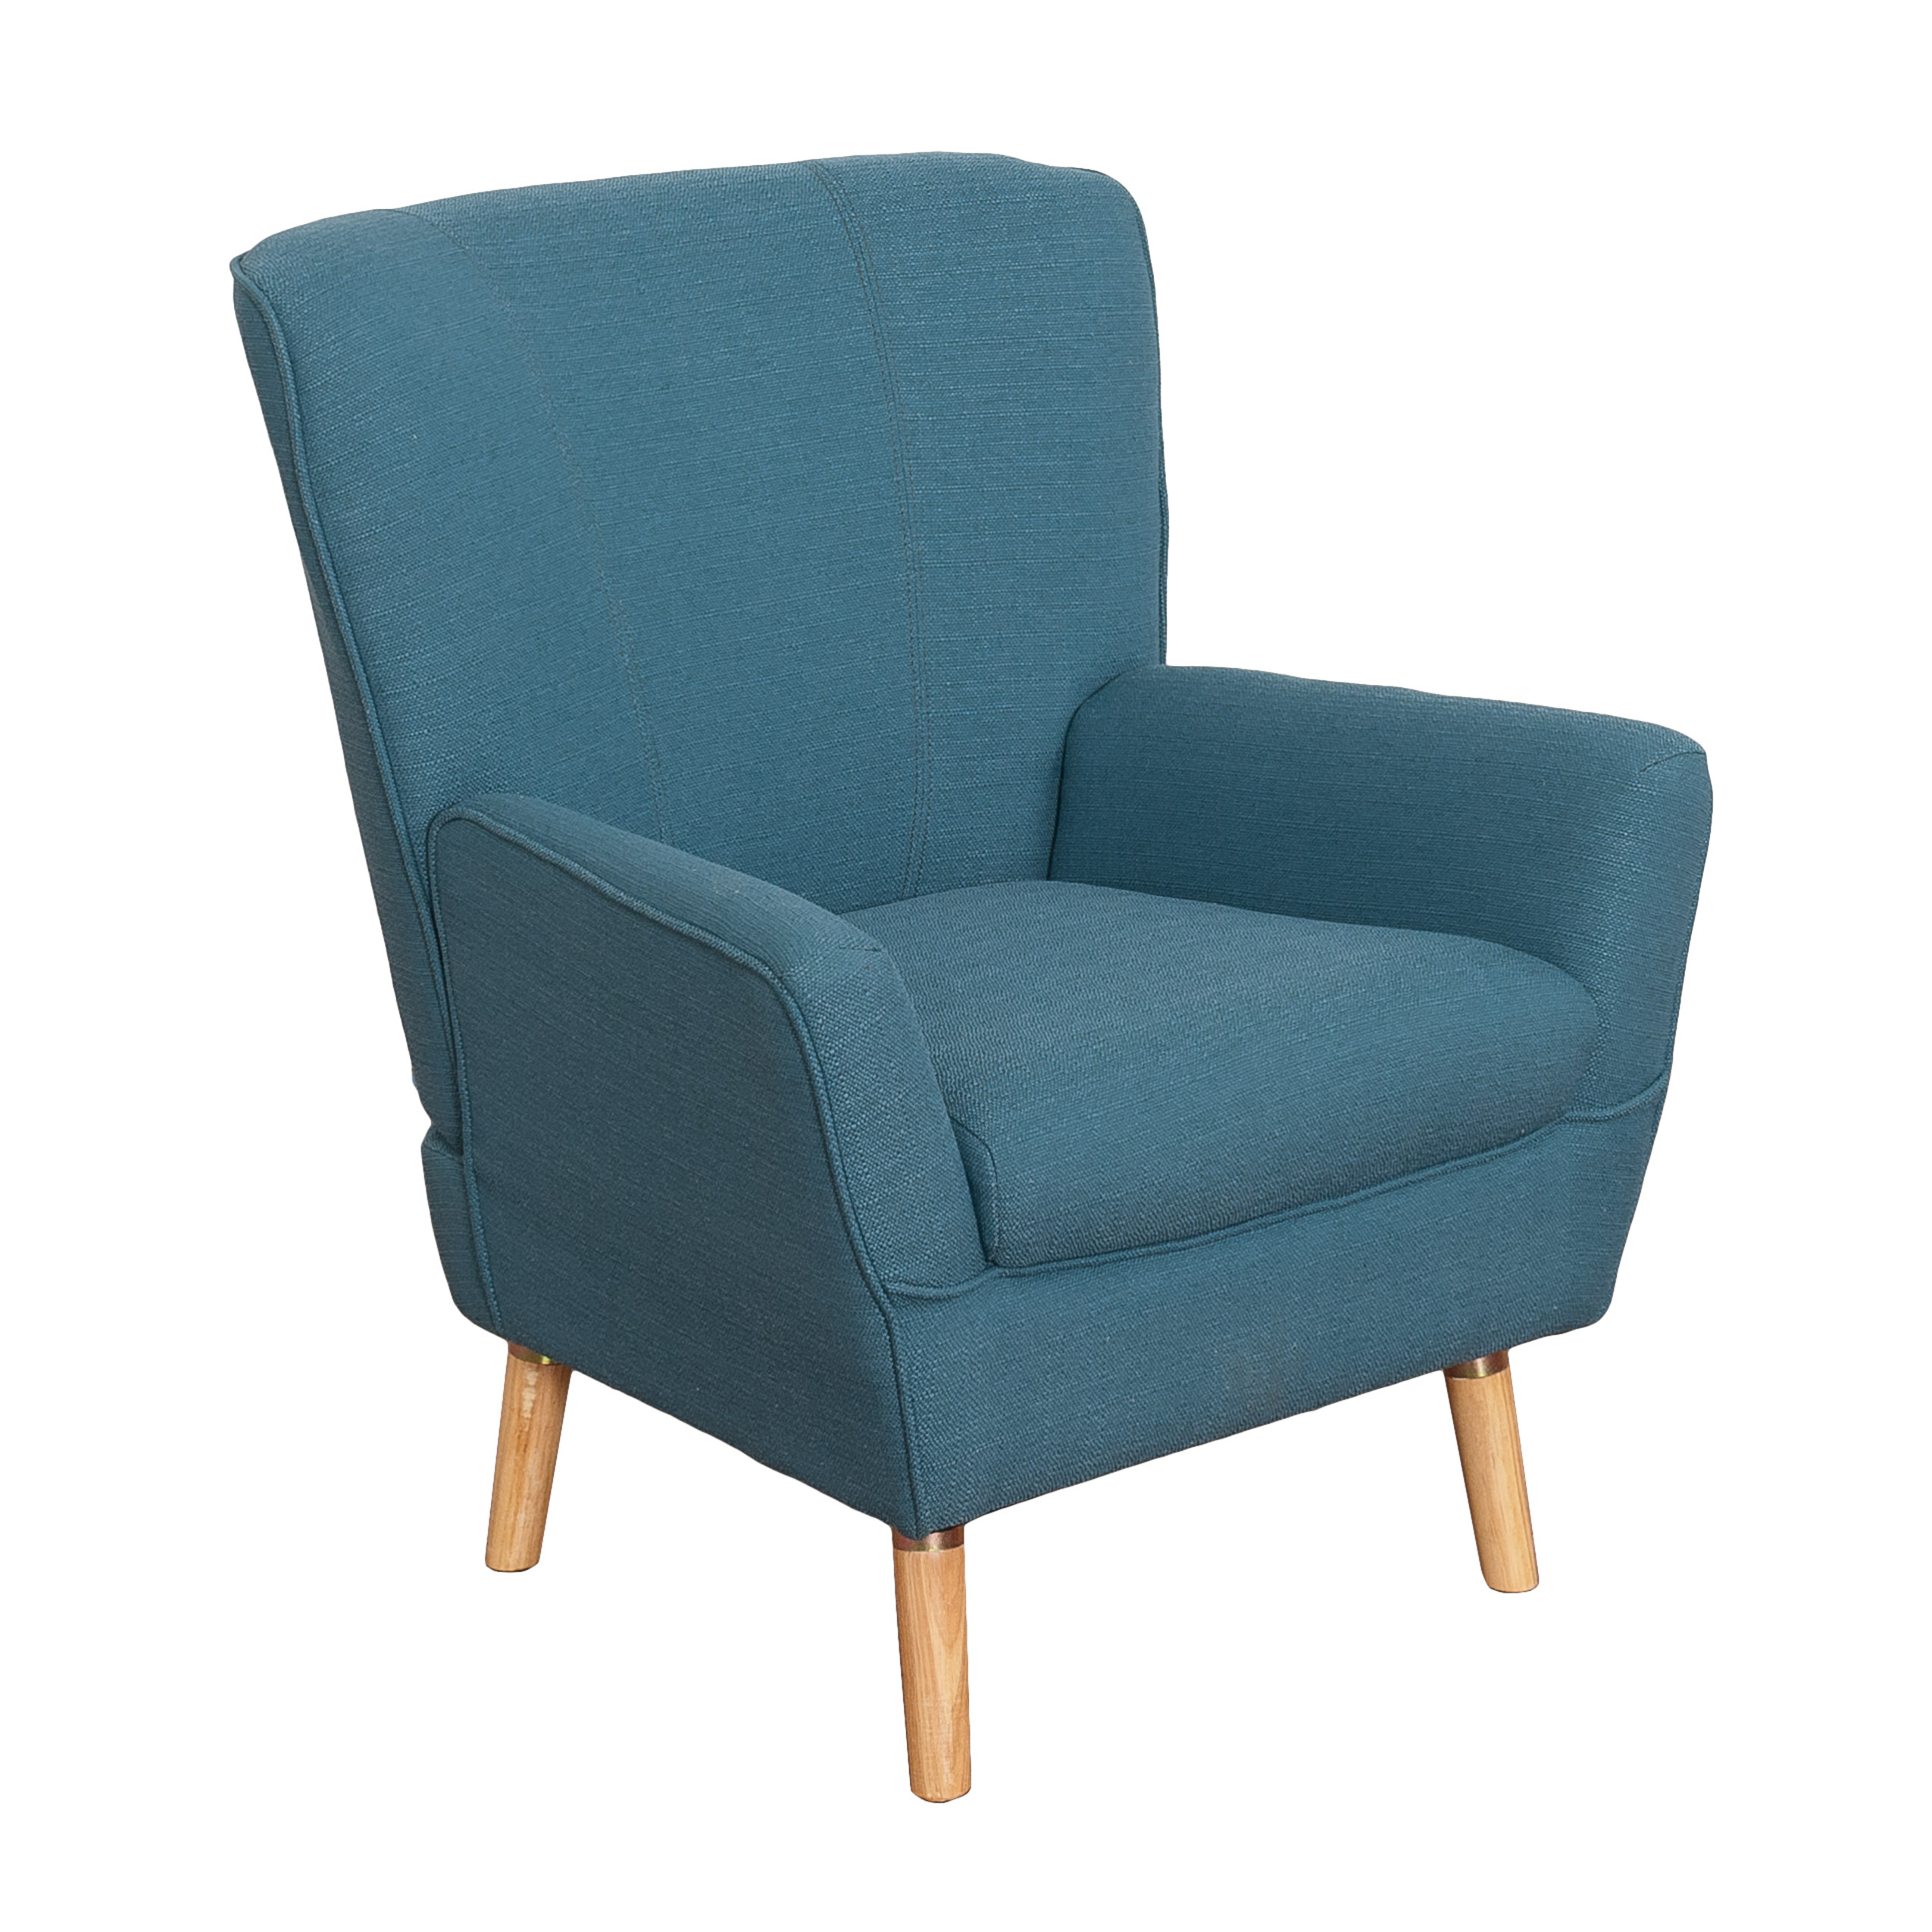 Demi Club Chair in Linen Fabric by CorLiving